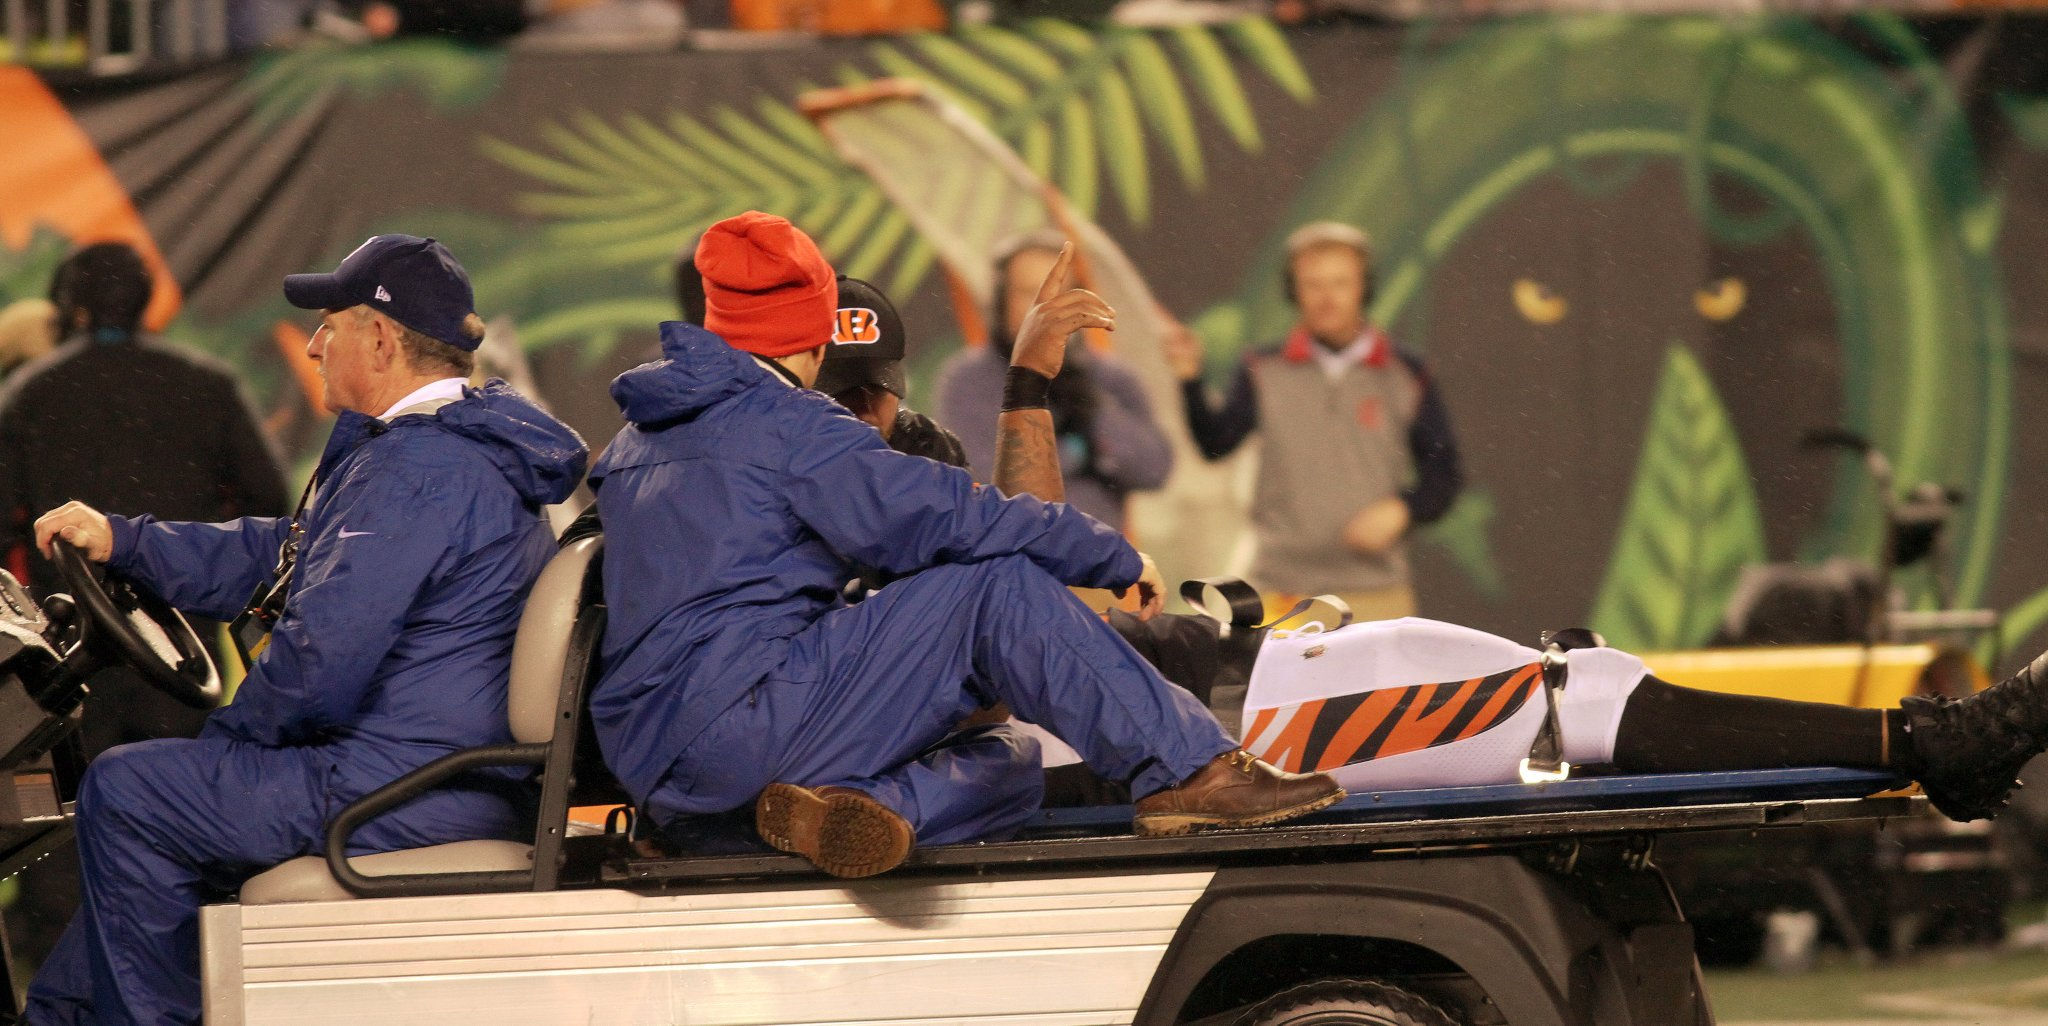 Cincinnati Bengals outside linebacker Vontaze Burfict gestures as he is carted off the field after an apparent injury in the second half of an NFL football game against the Pittsburgh Steelers, Monday, Dec. 4, 2017, in Cincinnati. (WKRC/Tony Tribble)